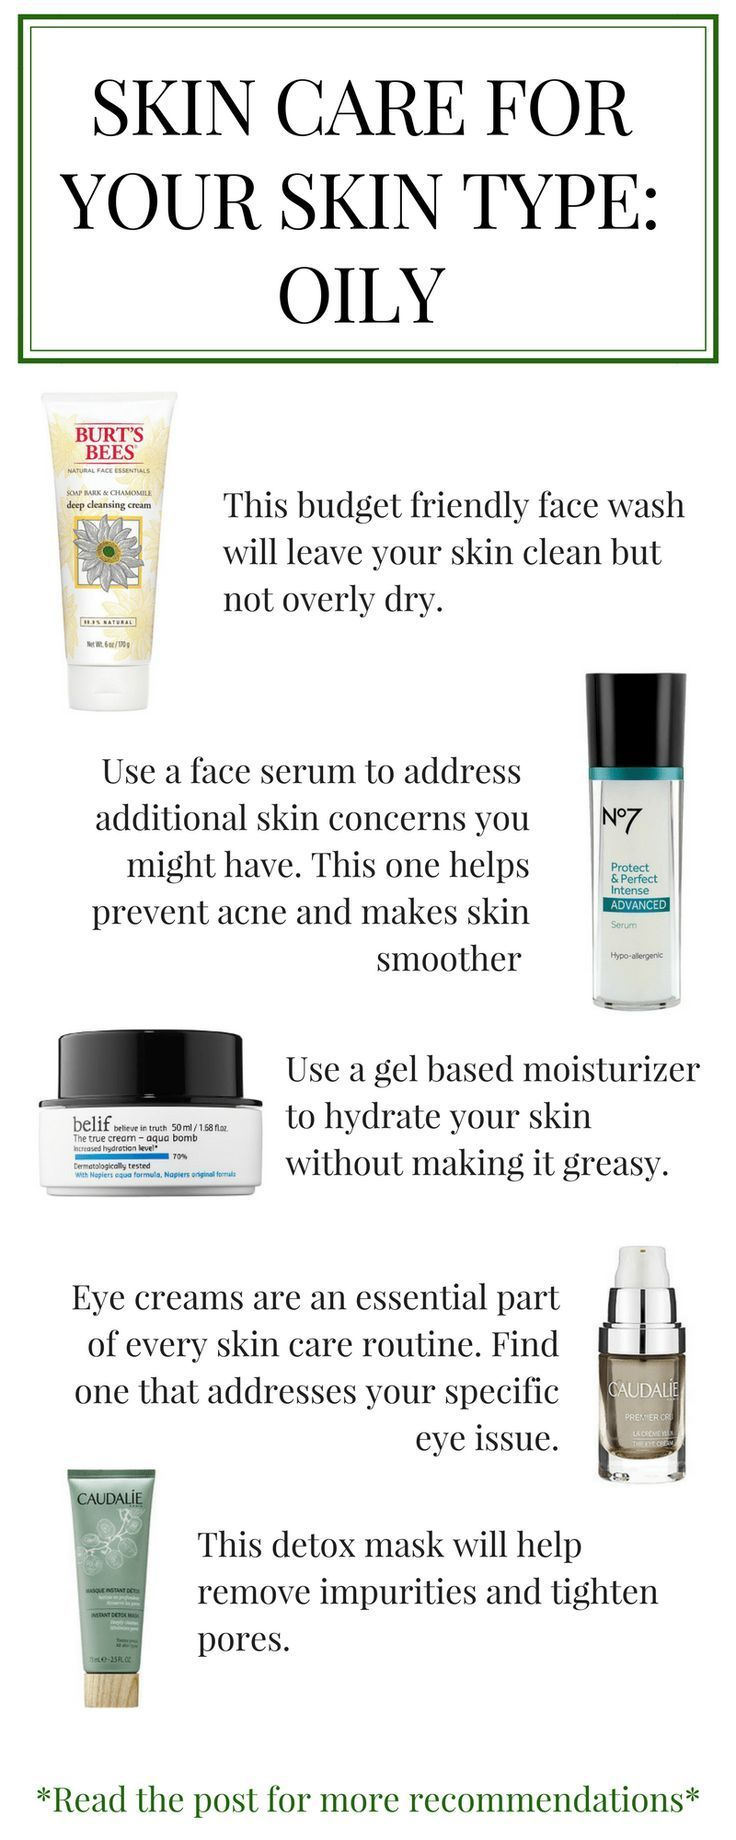 Save This Pin Detailed Skin Care Routine For People With Oily Skin Featuring Caudalie Belif And More Skincare Bea Oily Skin Skin Care Skin Care Secrets